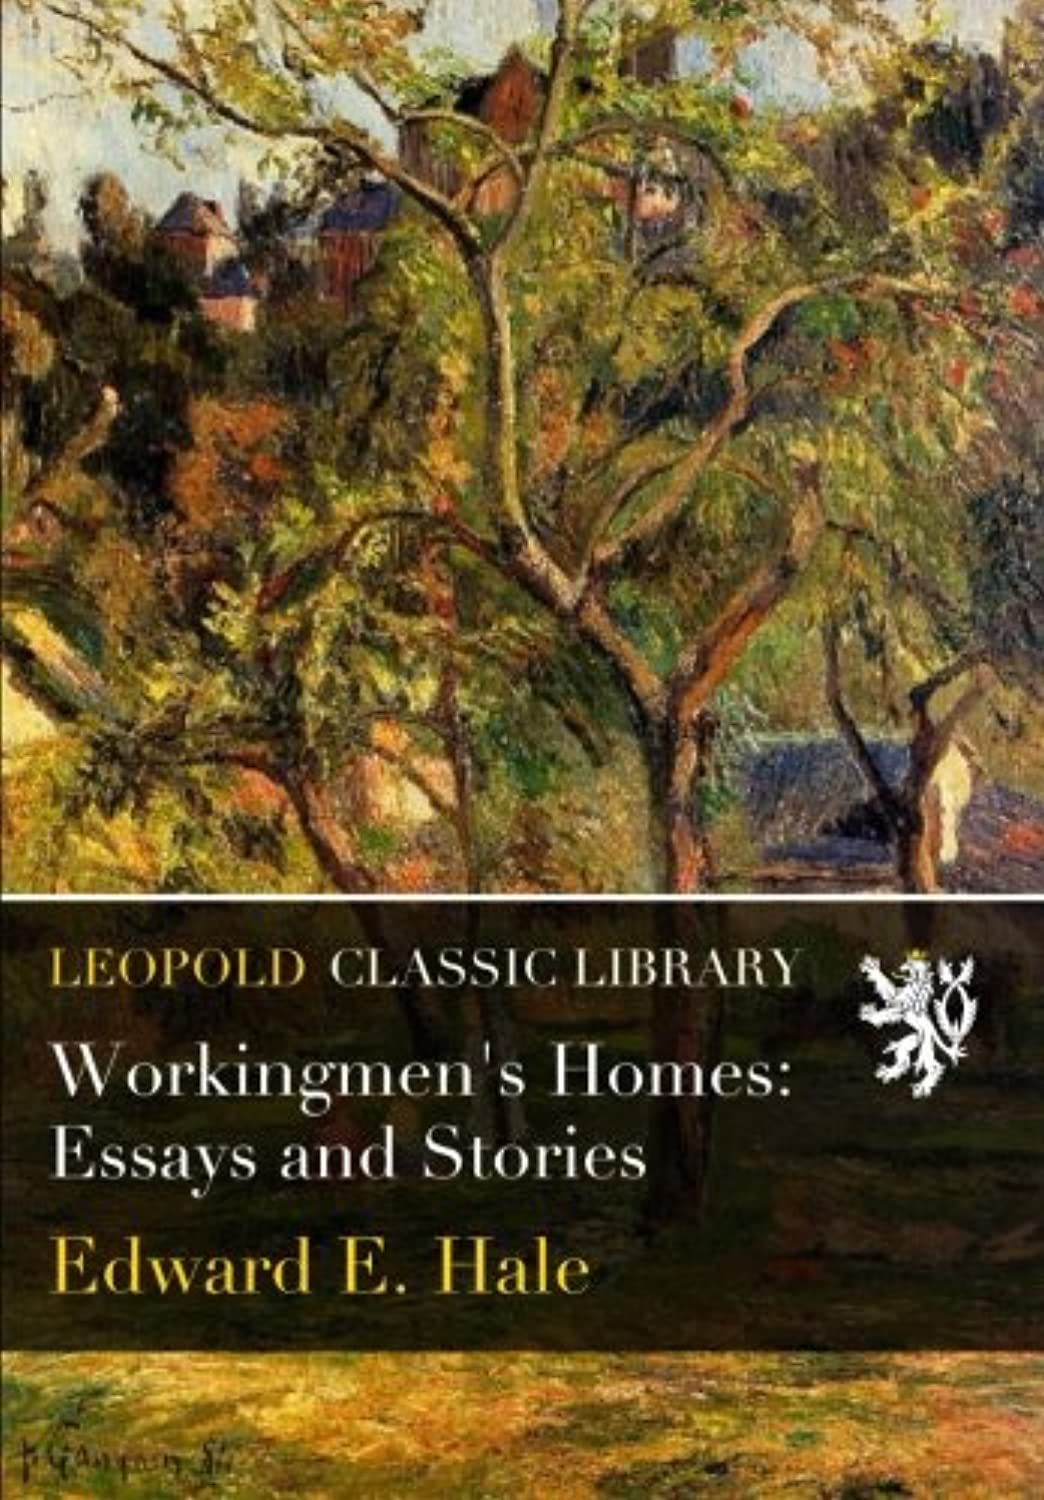 Workingmen's Homes: Essays and Stories